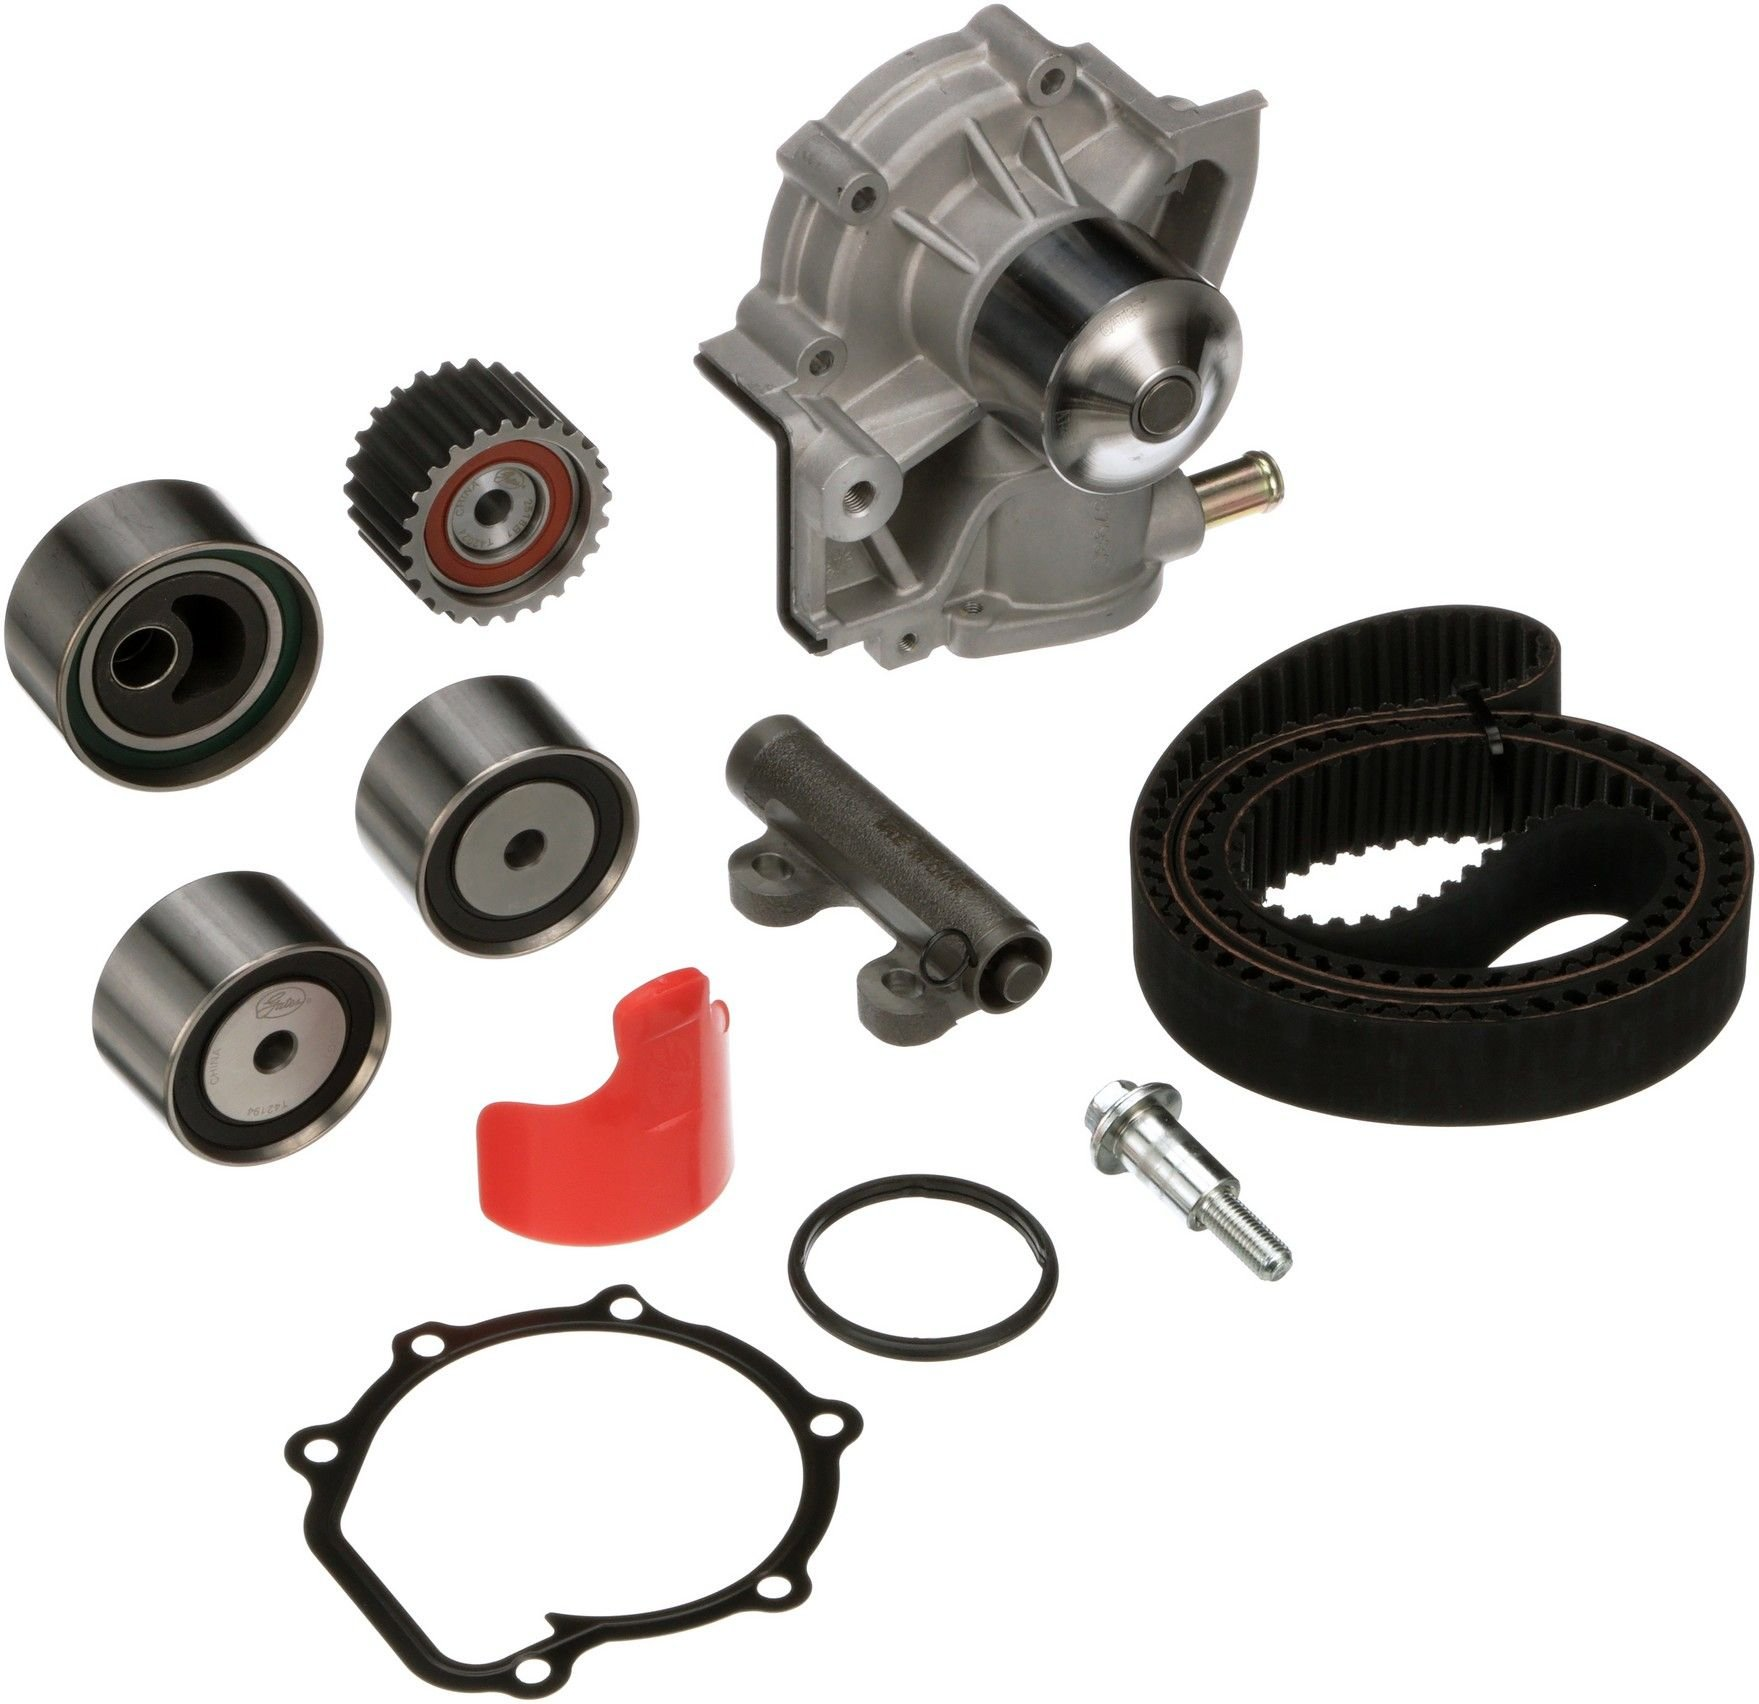 Subaru Legacy Engine Timing Belt Kit With Water Pump Replacement B4 Diagram 1996 4 Cyl 22l Gates Tckwp254